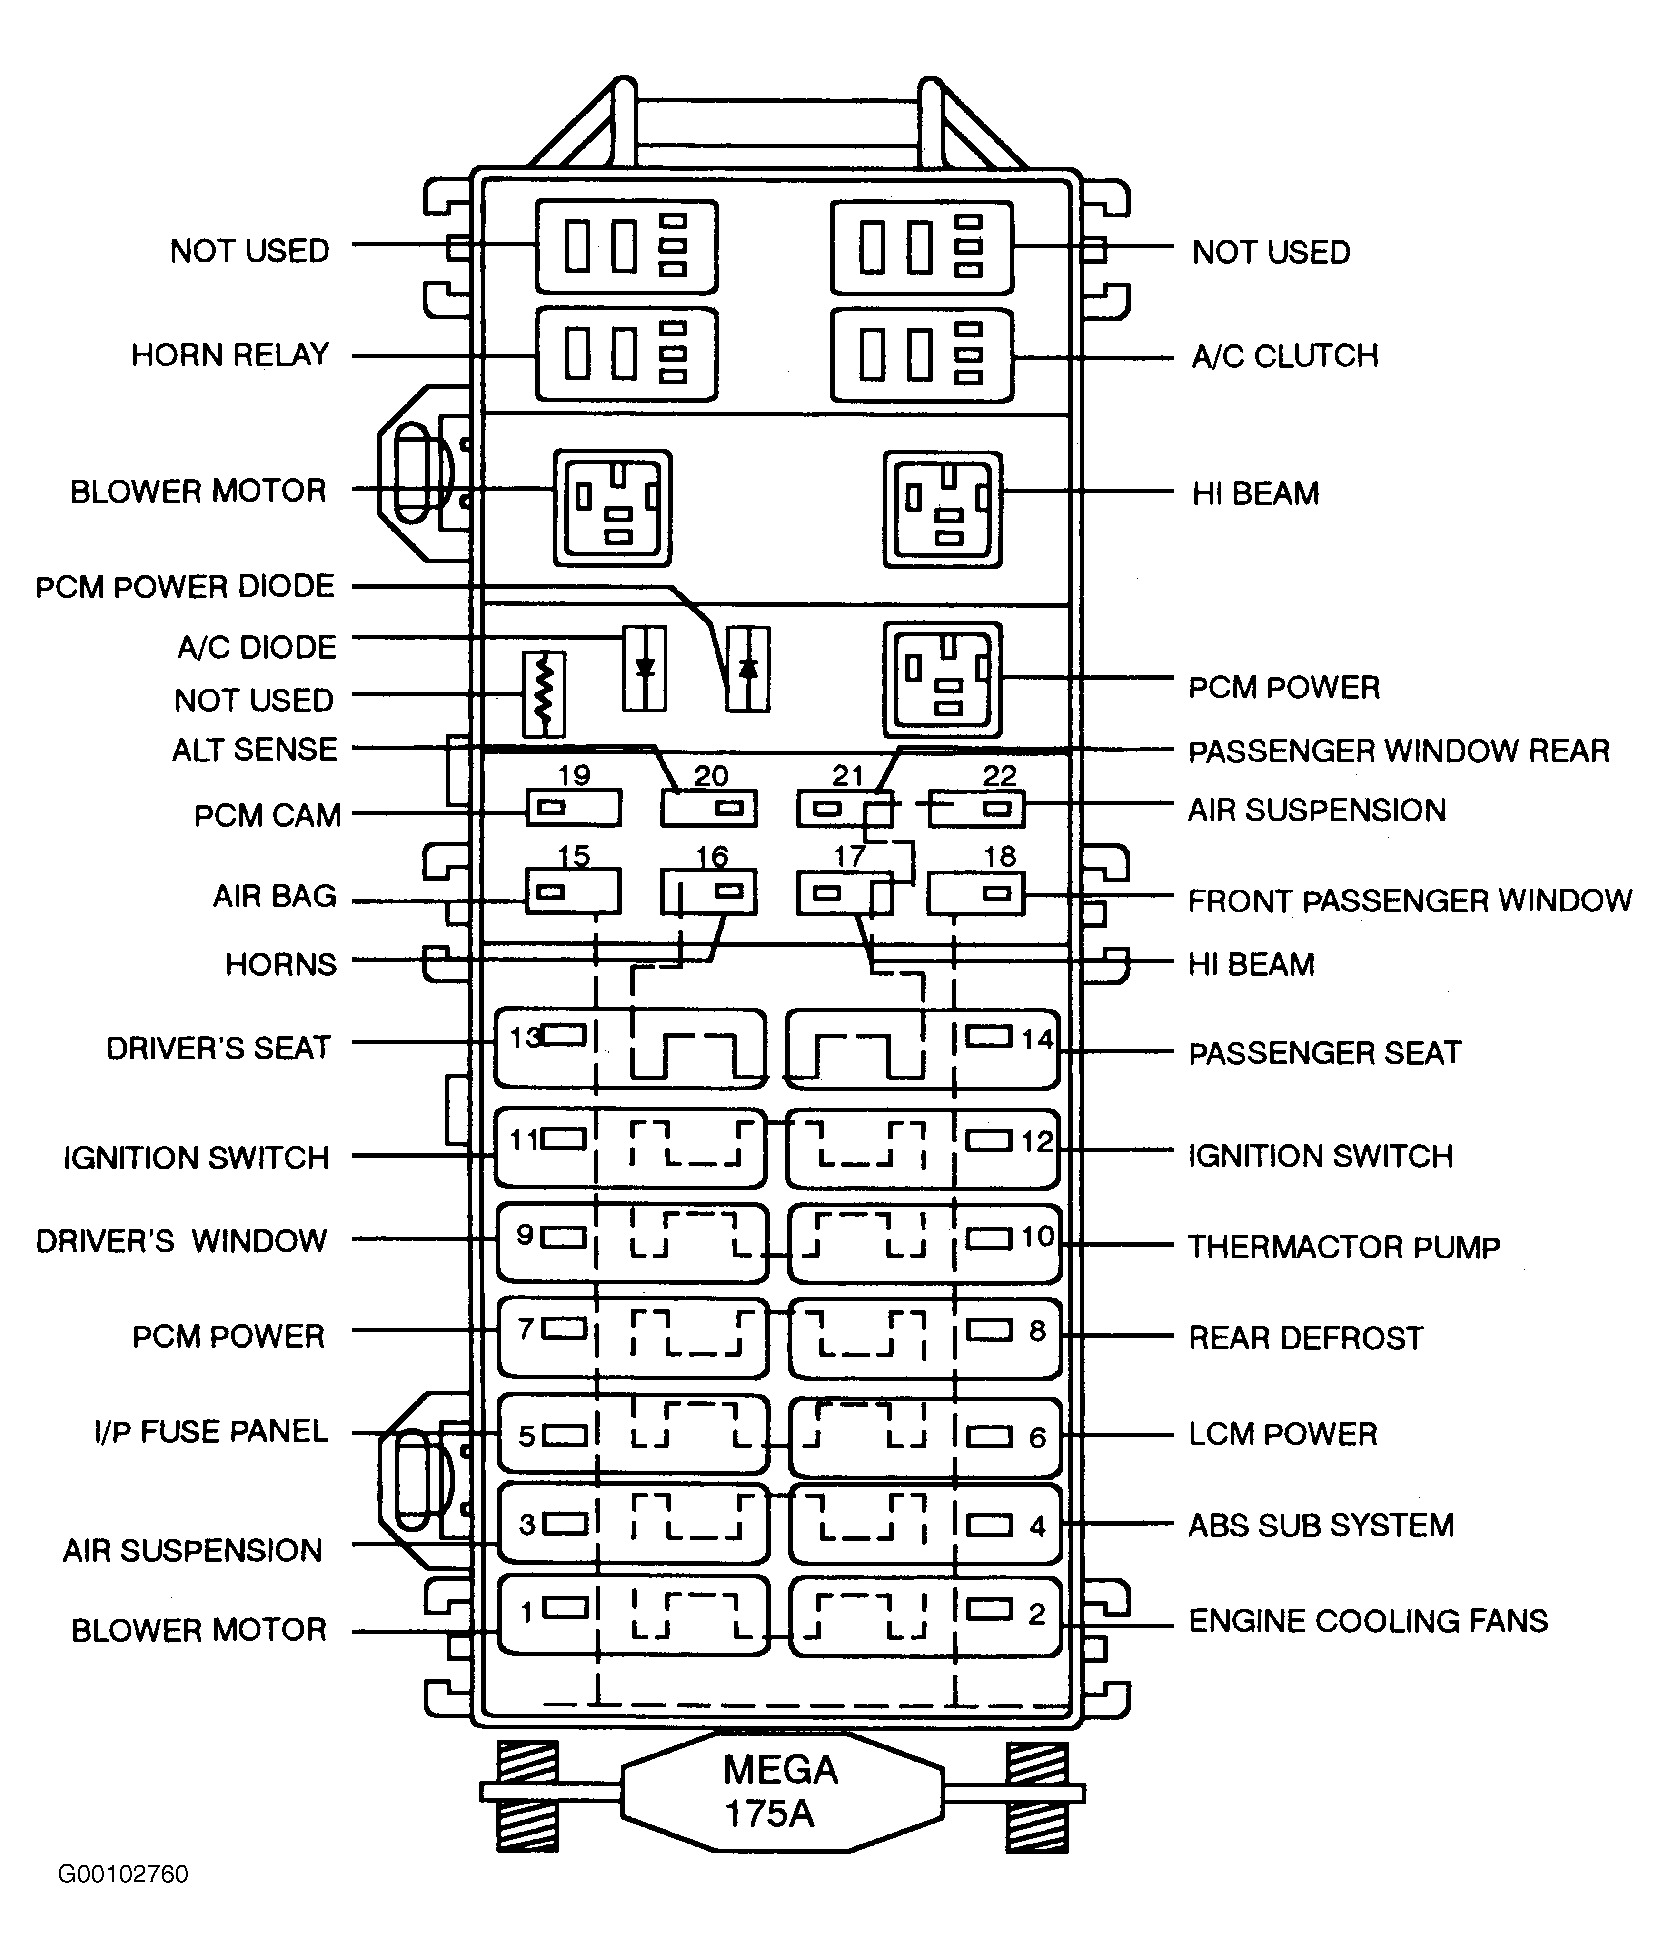 29G_715] 97 Lincoln Continental Fuse Box Diagram | standard-literacy wiring  schematic | standard-literacy.auditoriumtarentum.it | 1998 Lincoln Fuse Box Diagram |  | auditoriumtarentum.it